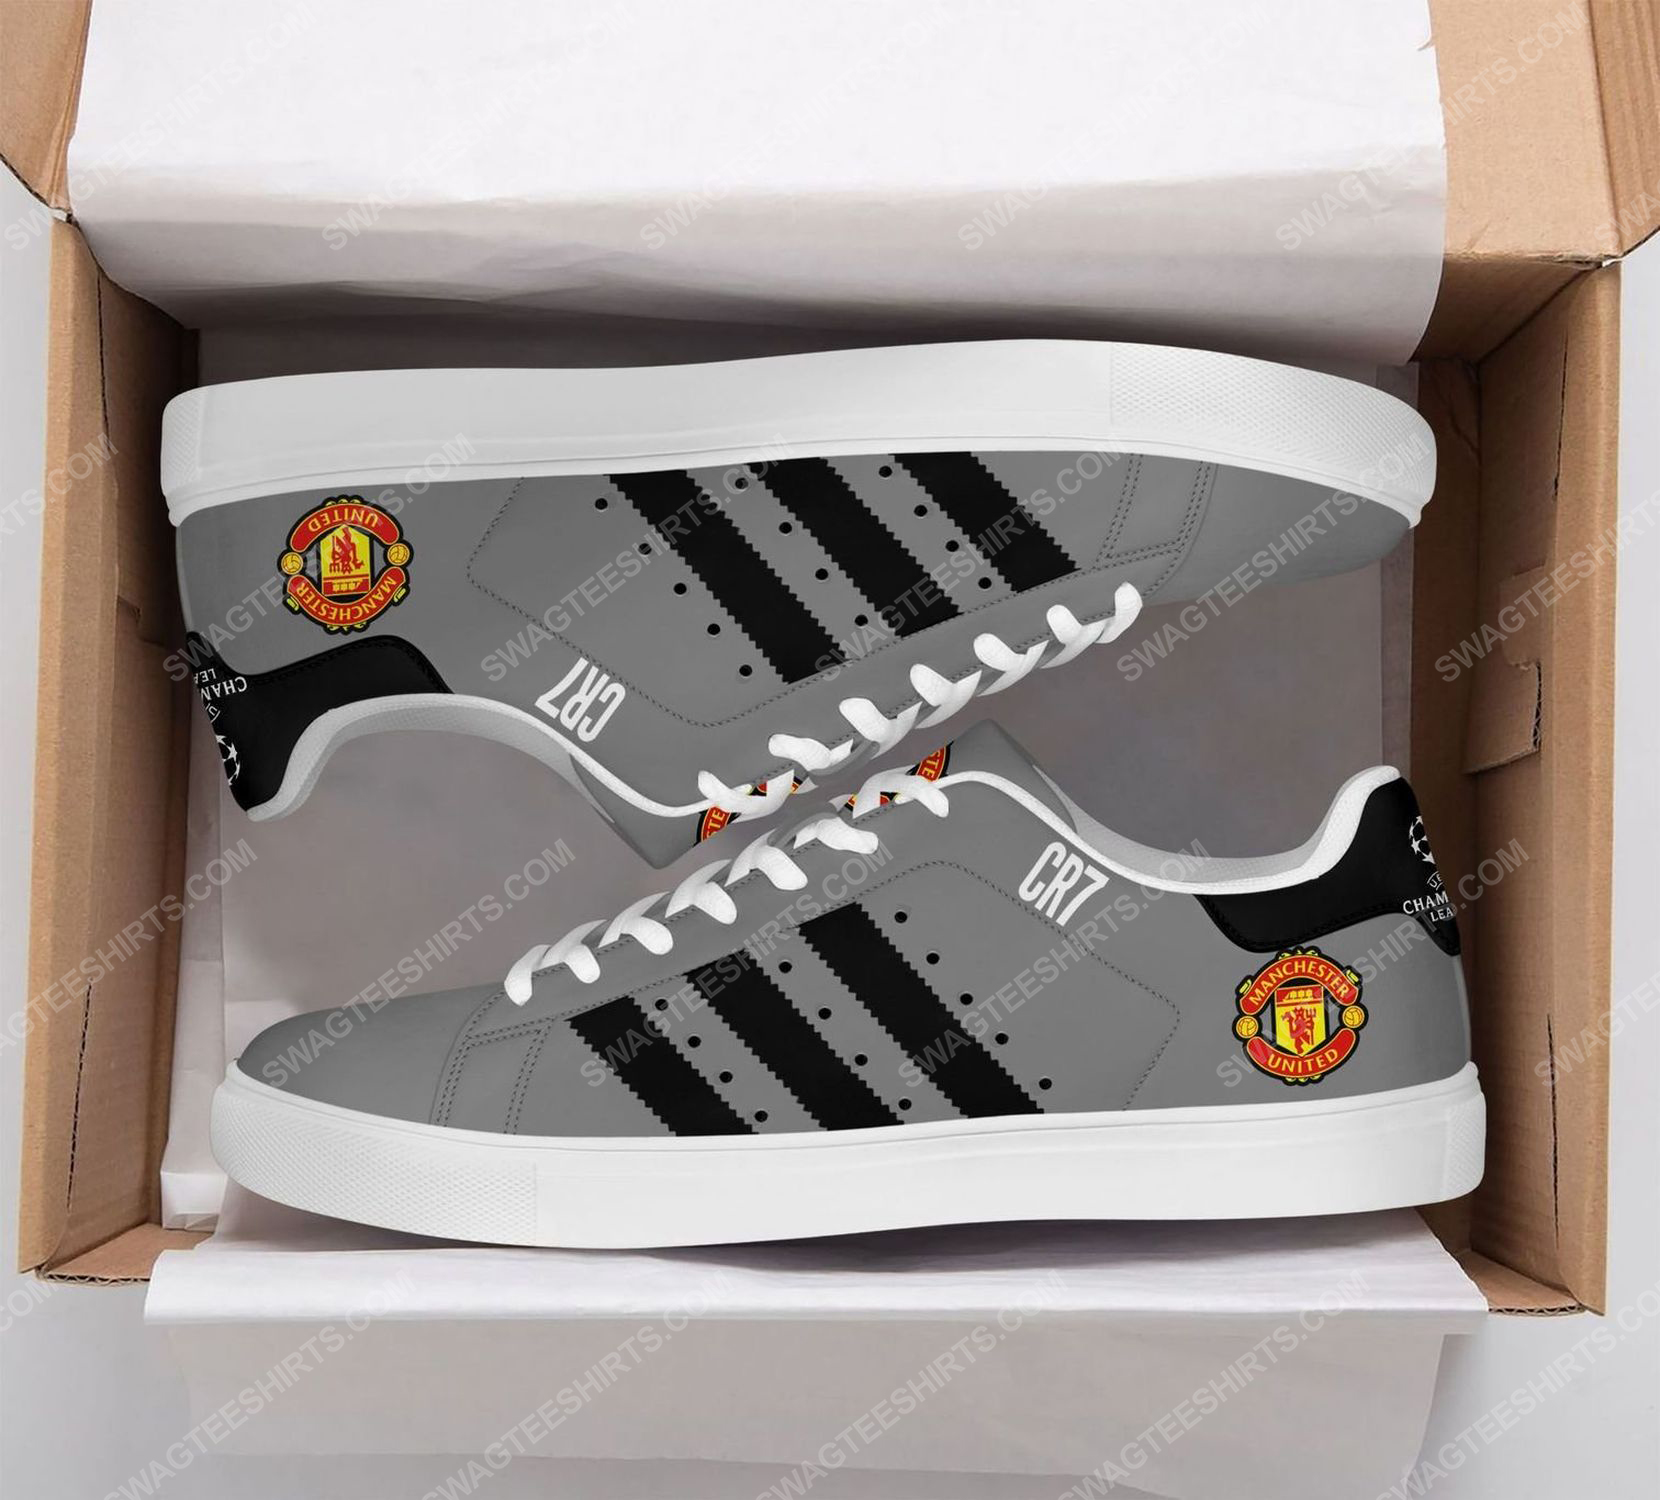 Manchester united football club stan smith shoes